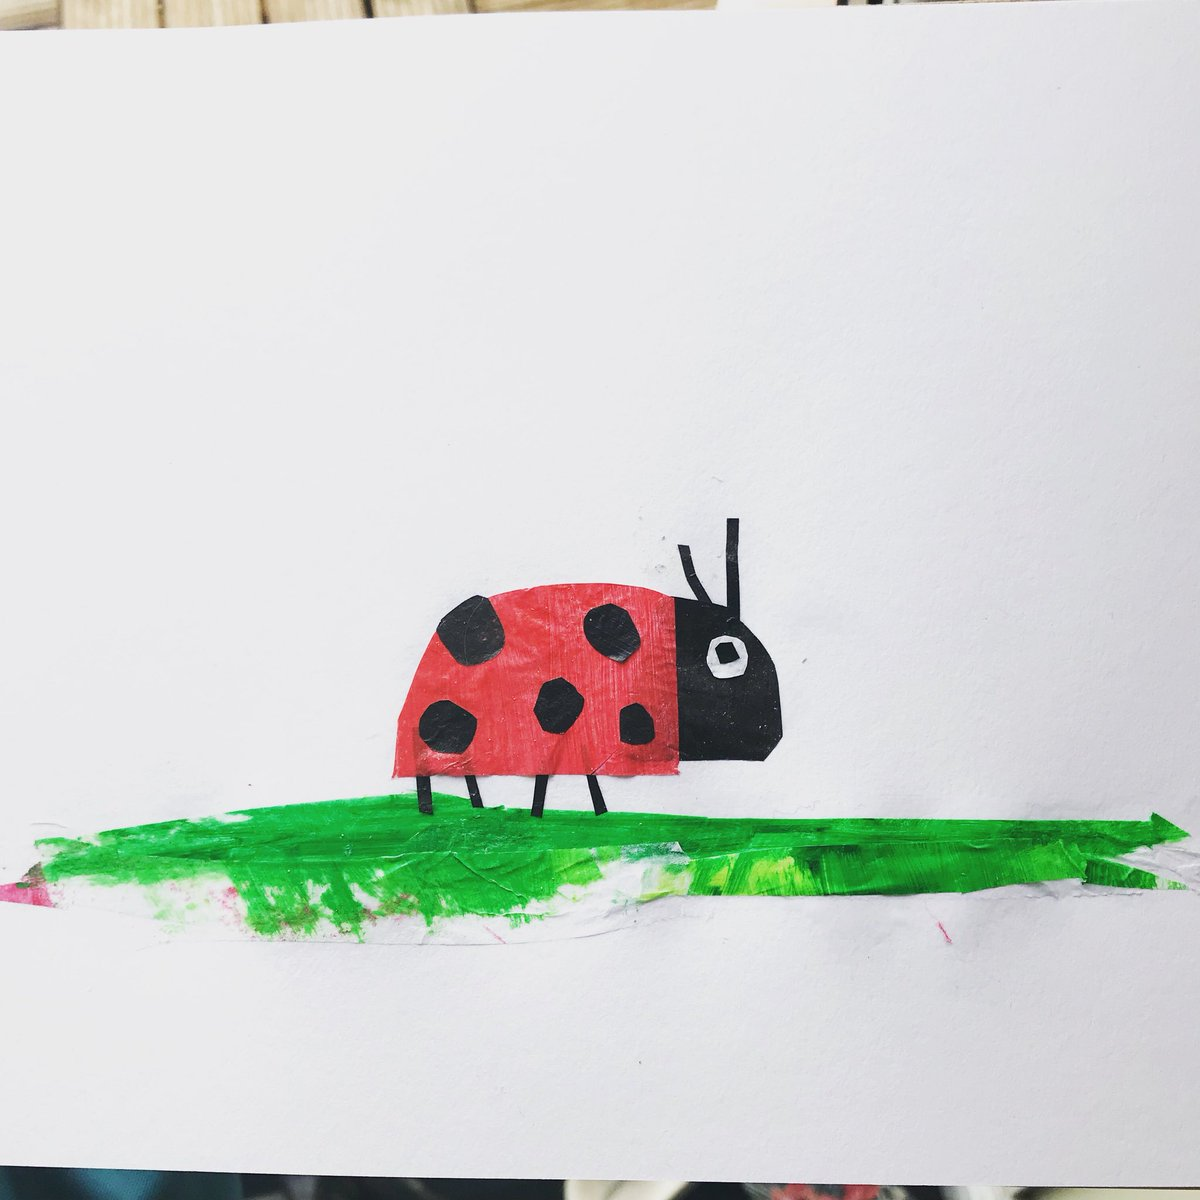 Still experimenting with this but so far I'm loving this technique! #shapes #ladybug #Illustrator #collage #cutandpaste <br>http://pic.twitter.com/AMSBxx1HZp